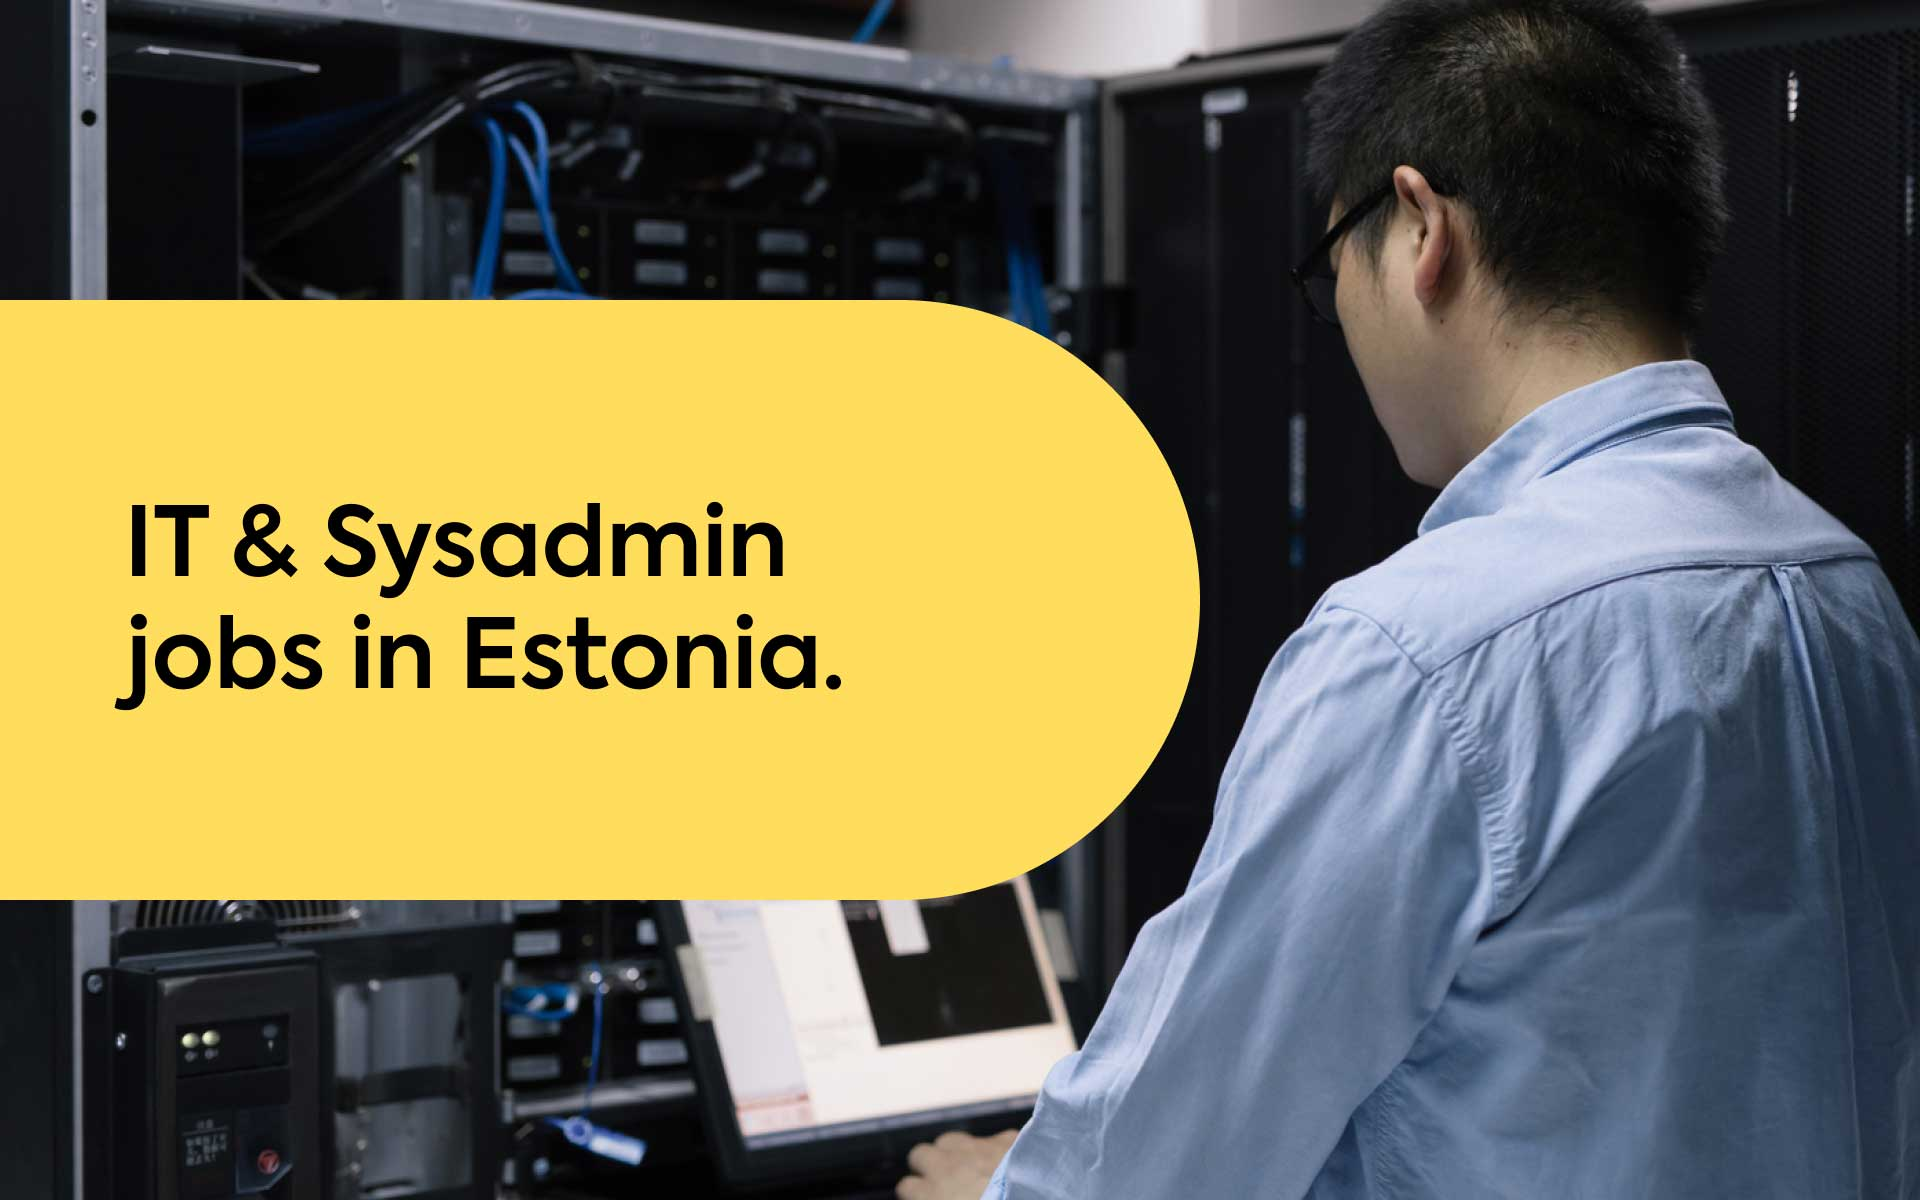 IT jobs in Estonia